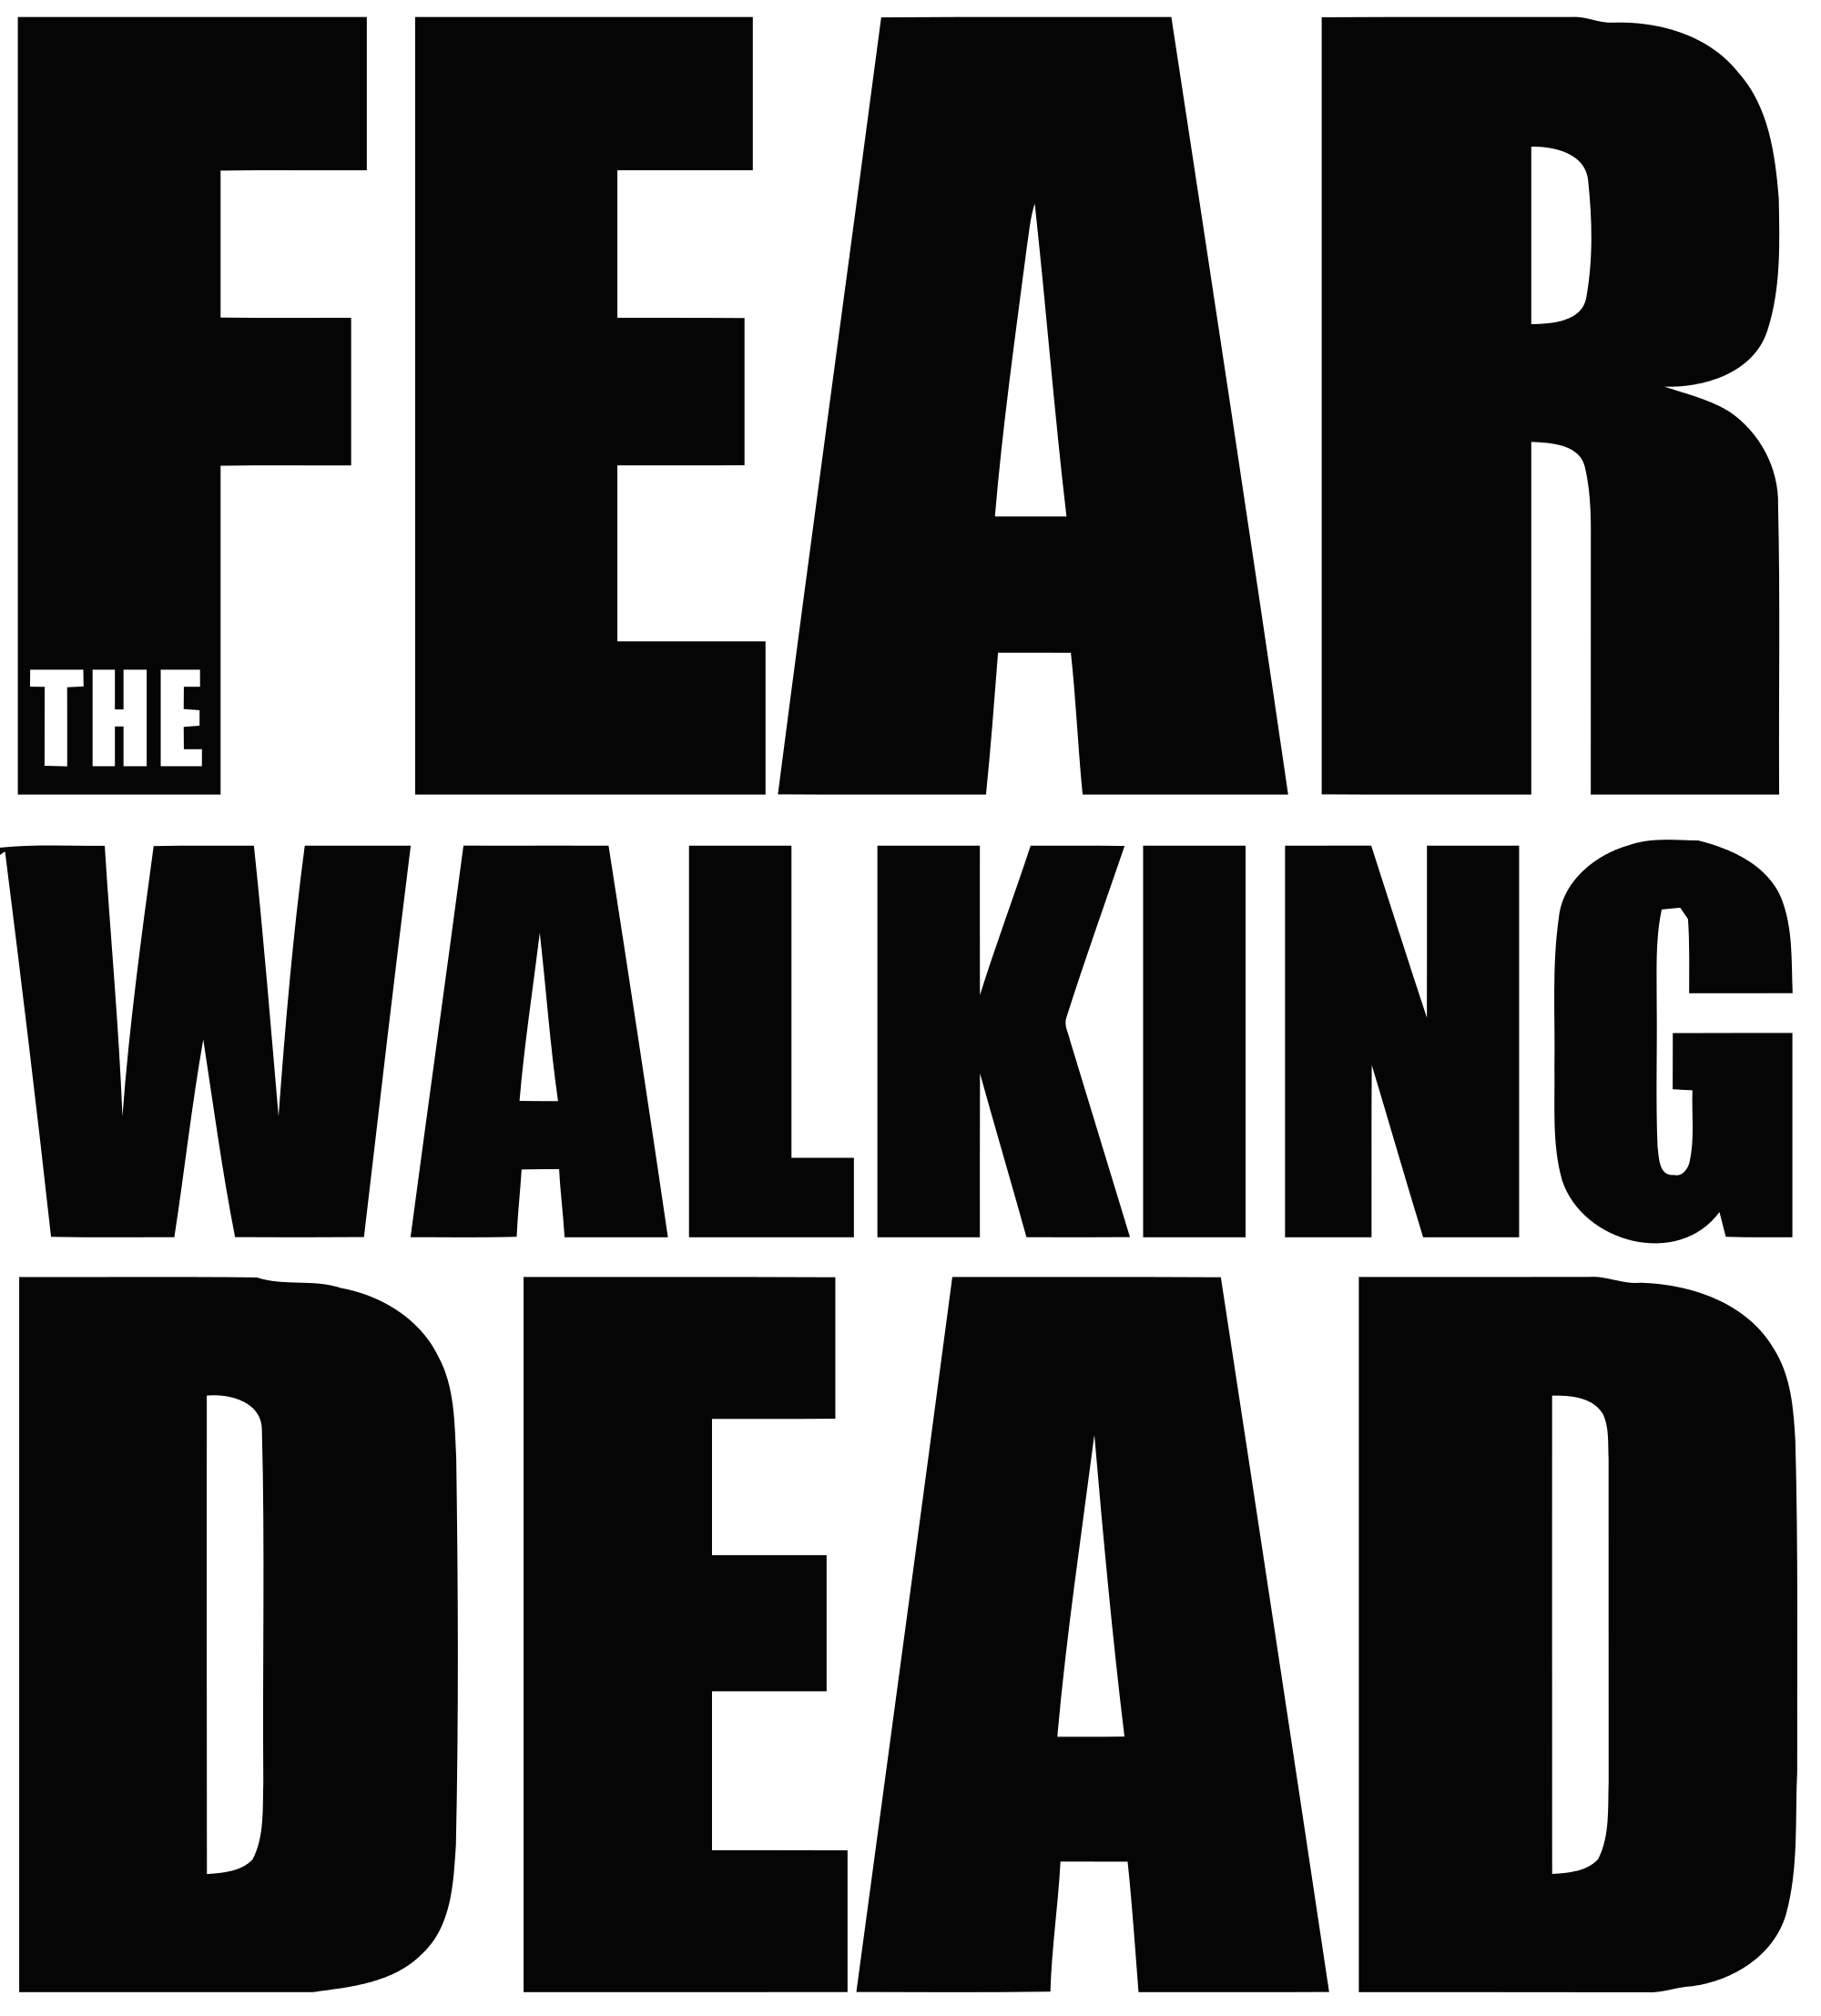 The walking logos download. Dead clipart logo